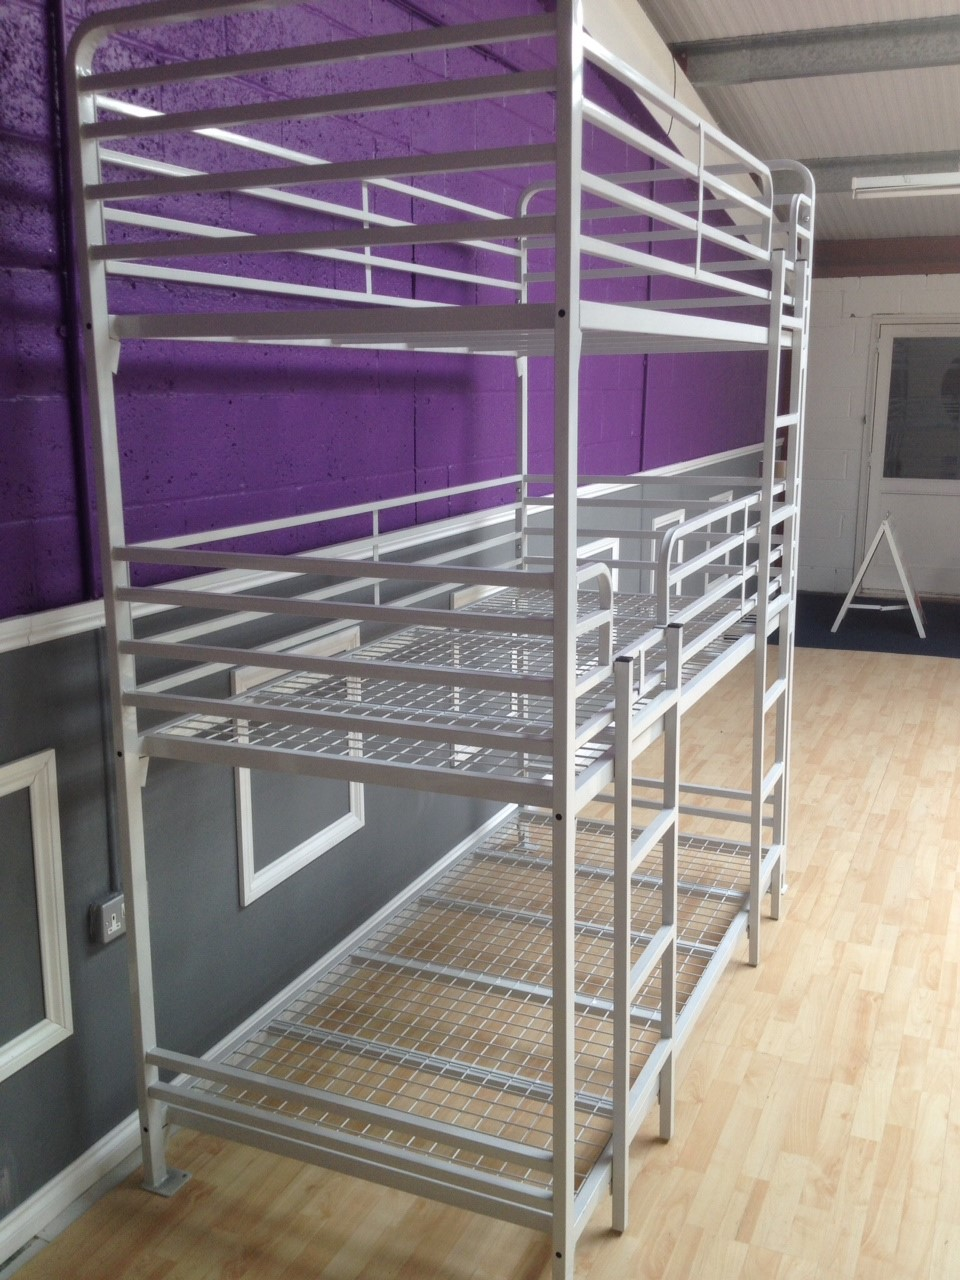 Sleep In Dormitory Bunk Beds For Holidays On A Budget